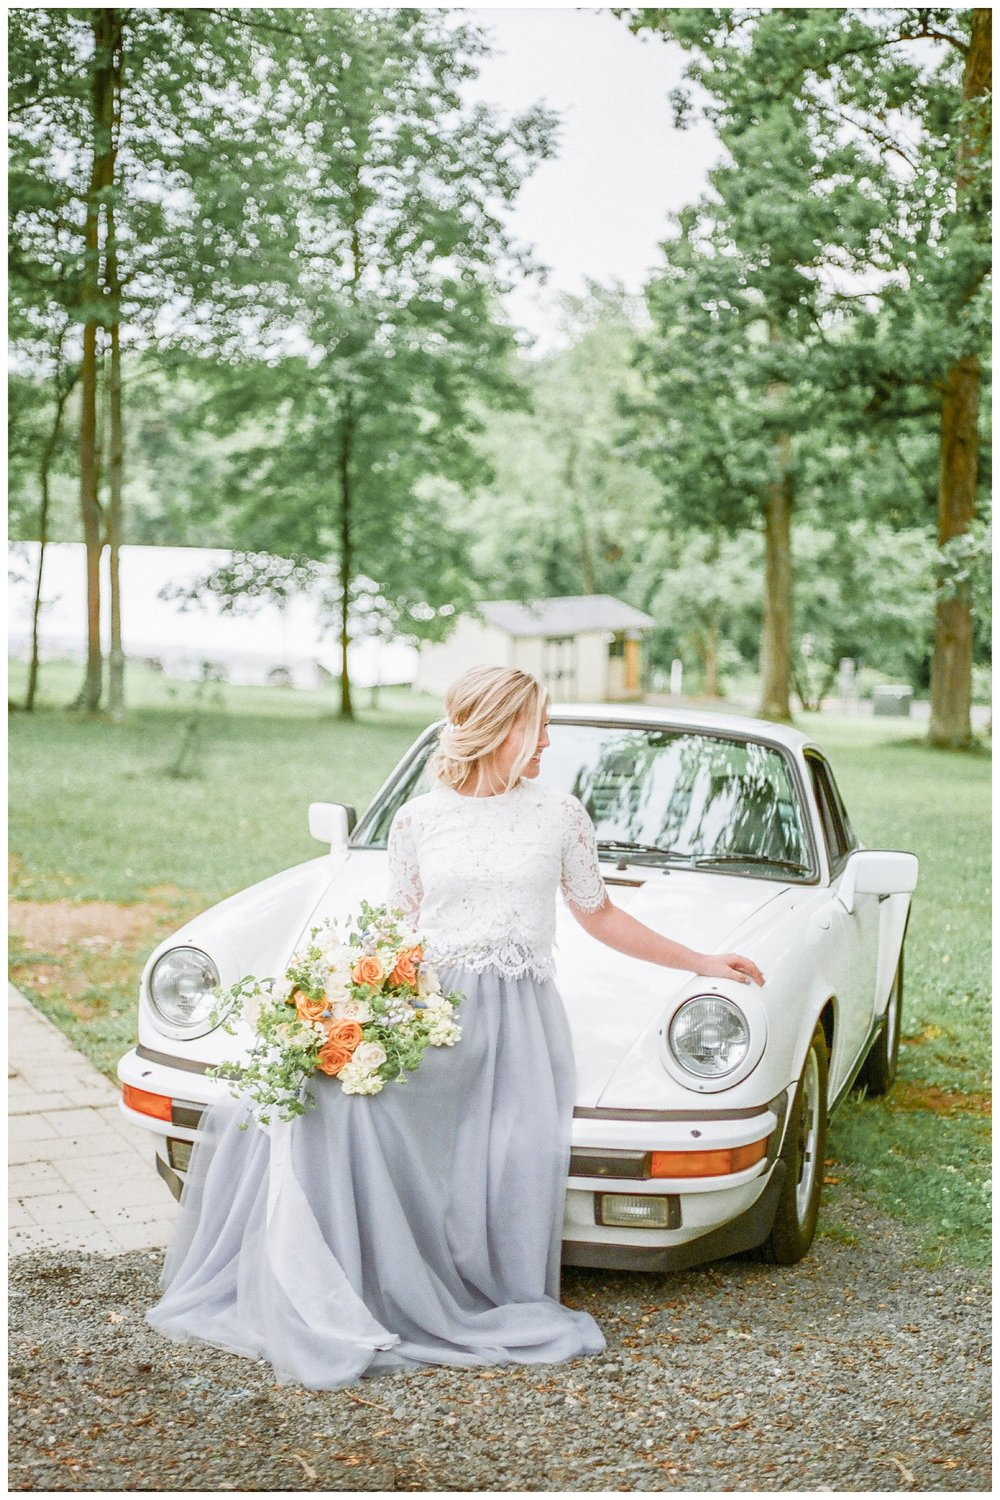 Rust Manor Wedding | Virginia Wedding Photographer Kir Tuben_0024.jpg